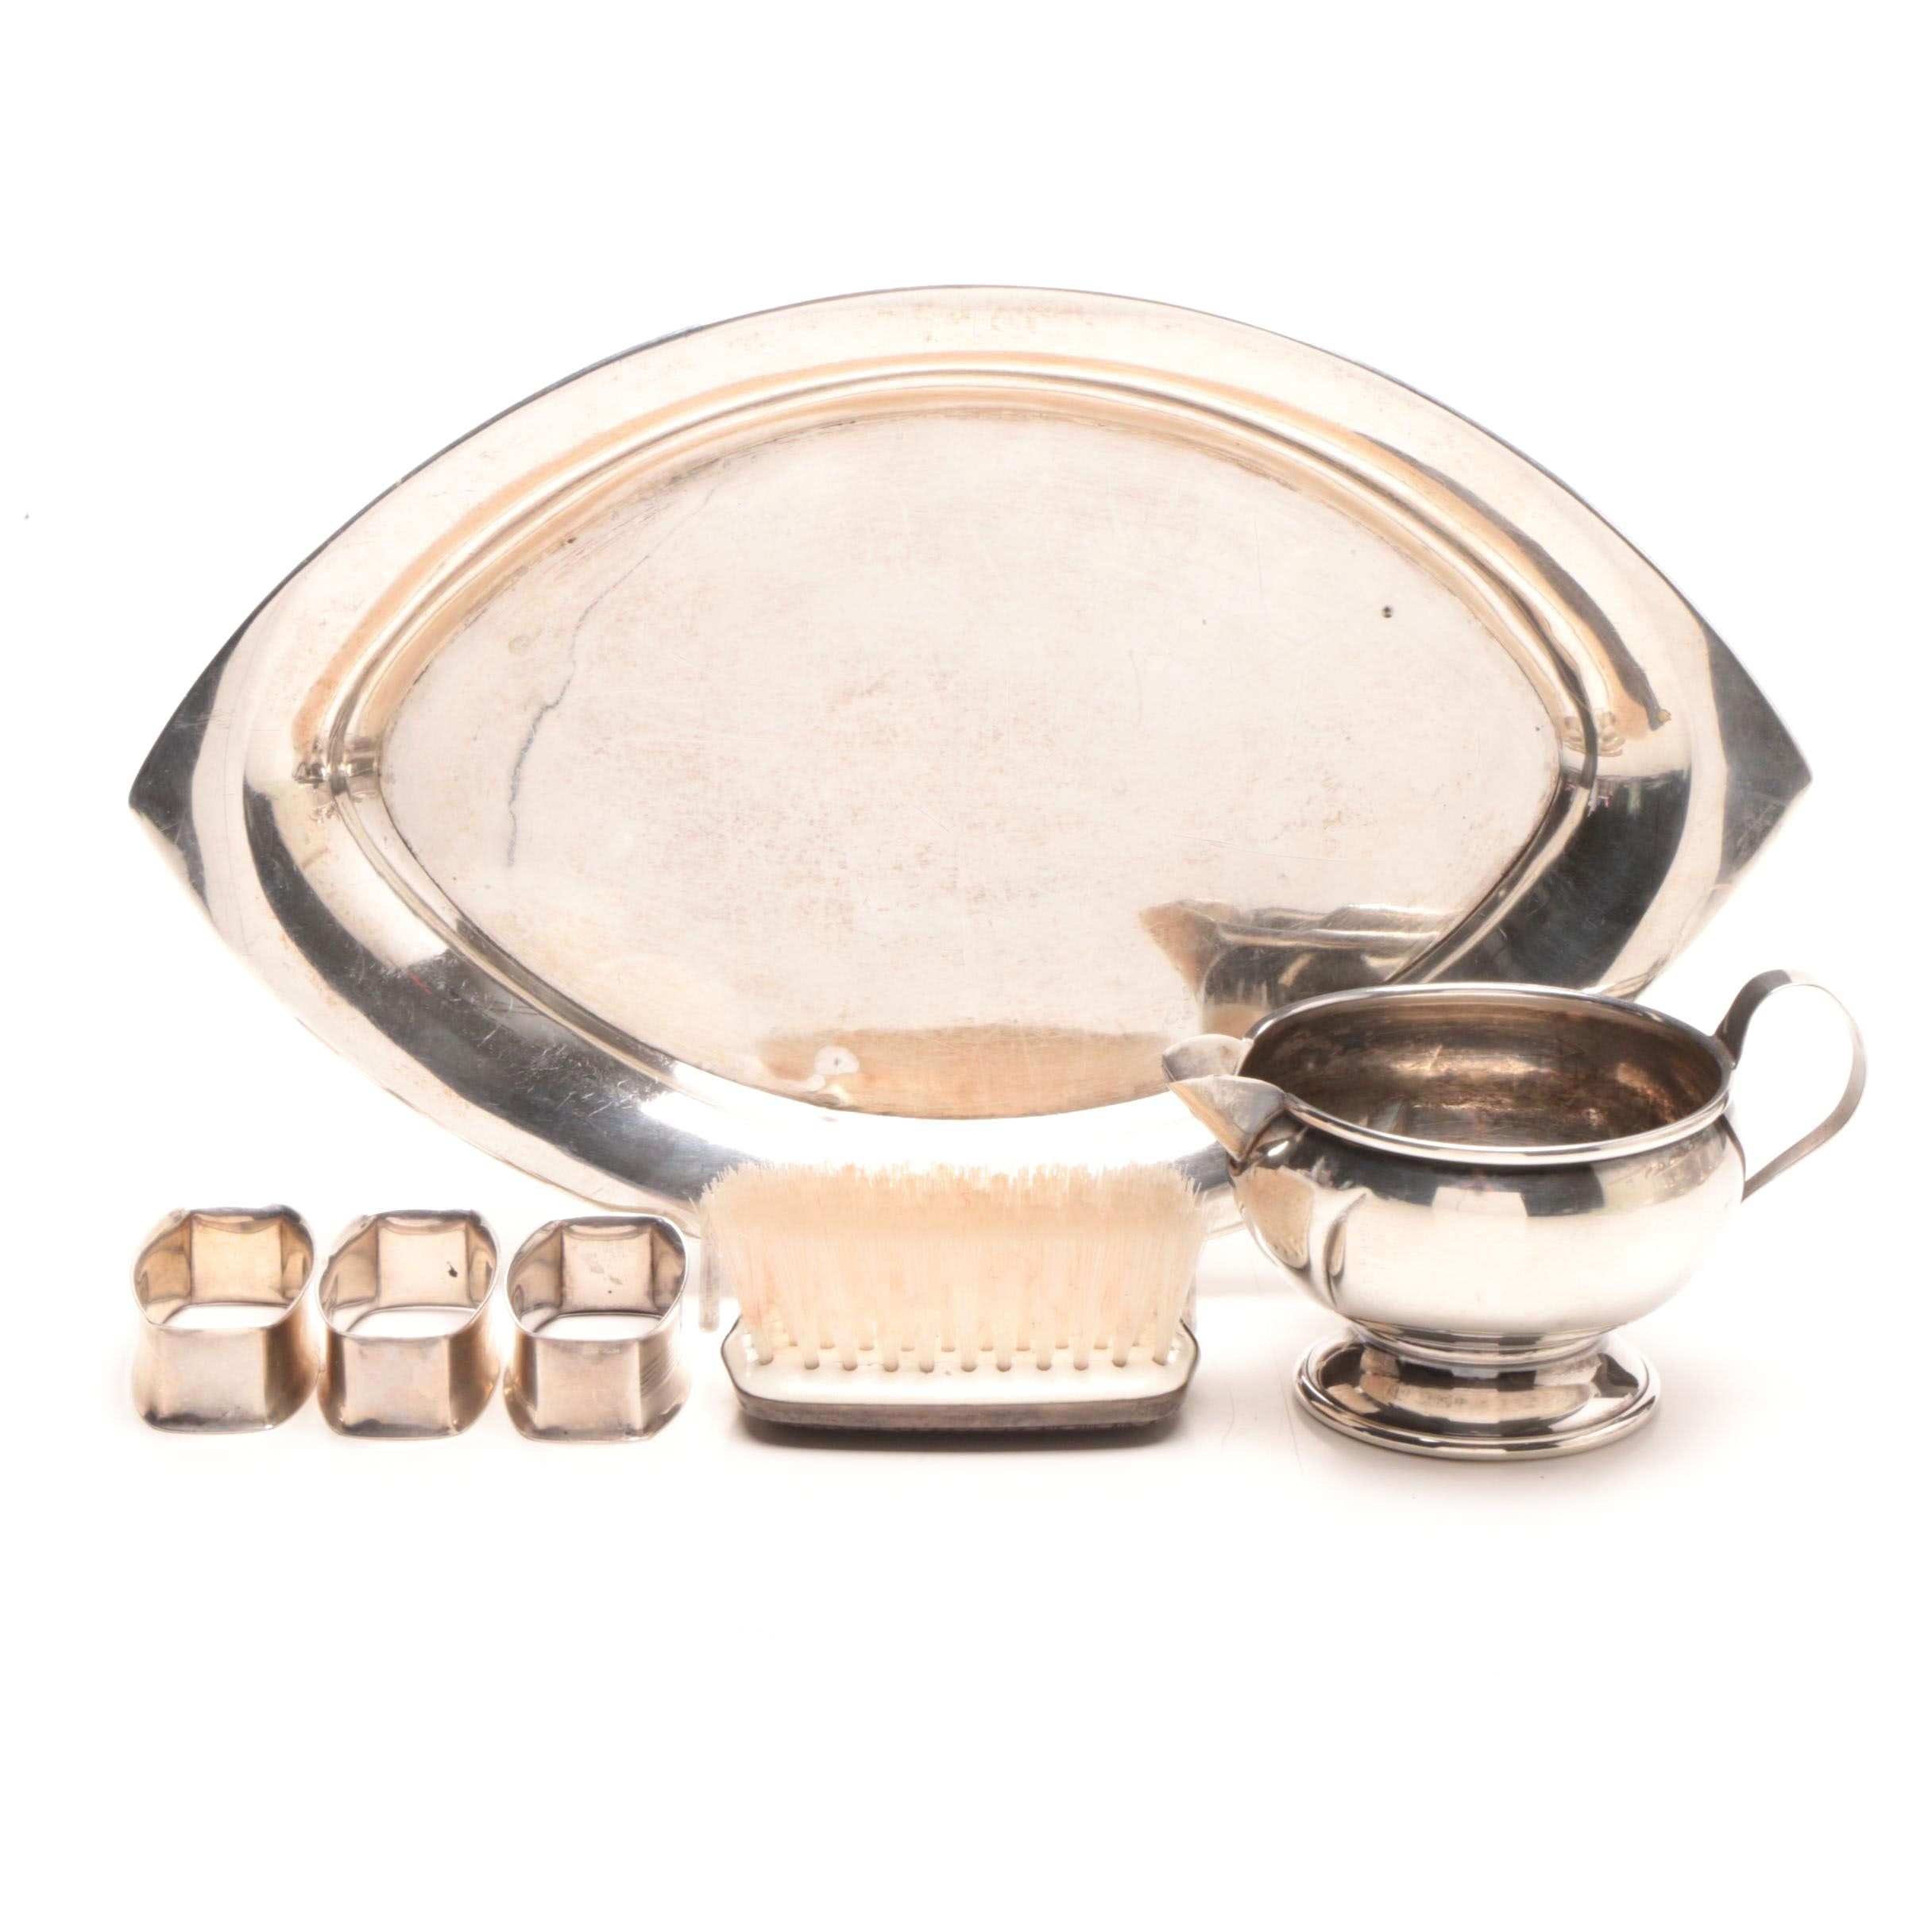 Webster Co. Sterling Tray and Napkin Rings with Sterling Brush and Creamer